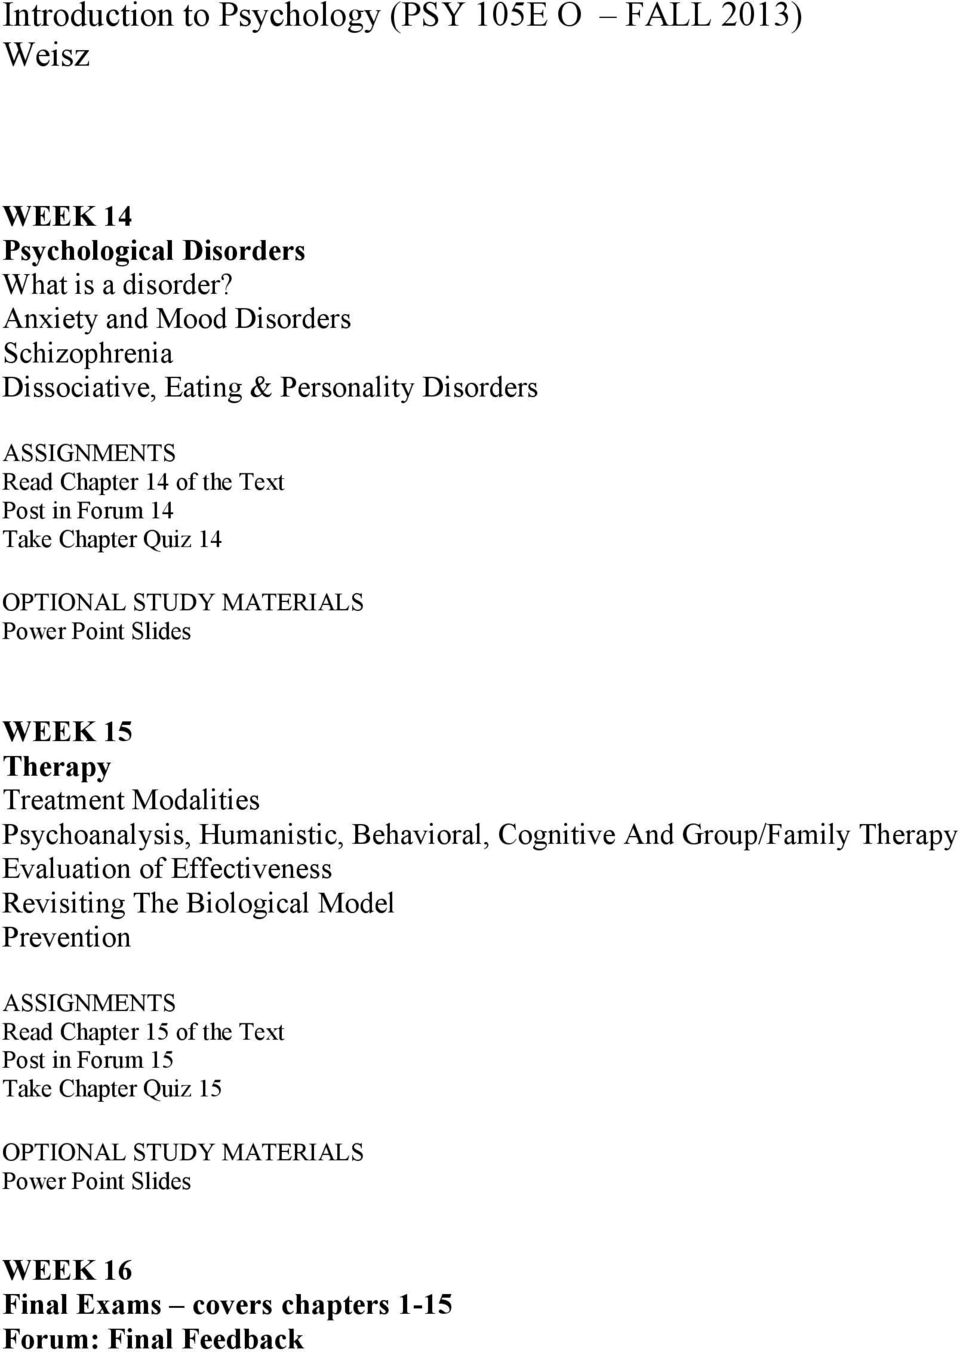 14 Take Chapter Quiz 14 WEEK 15 Therapy Treatment Modalities Psychoanalysis, Humanistic, Behavioral, Cognitive And Group/Family